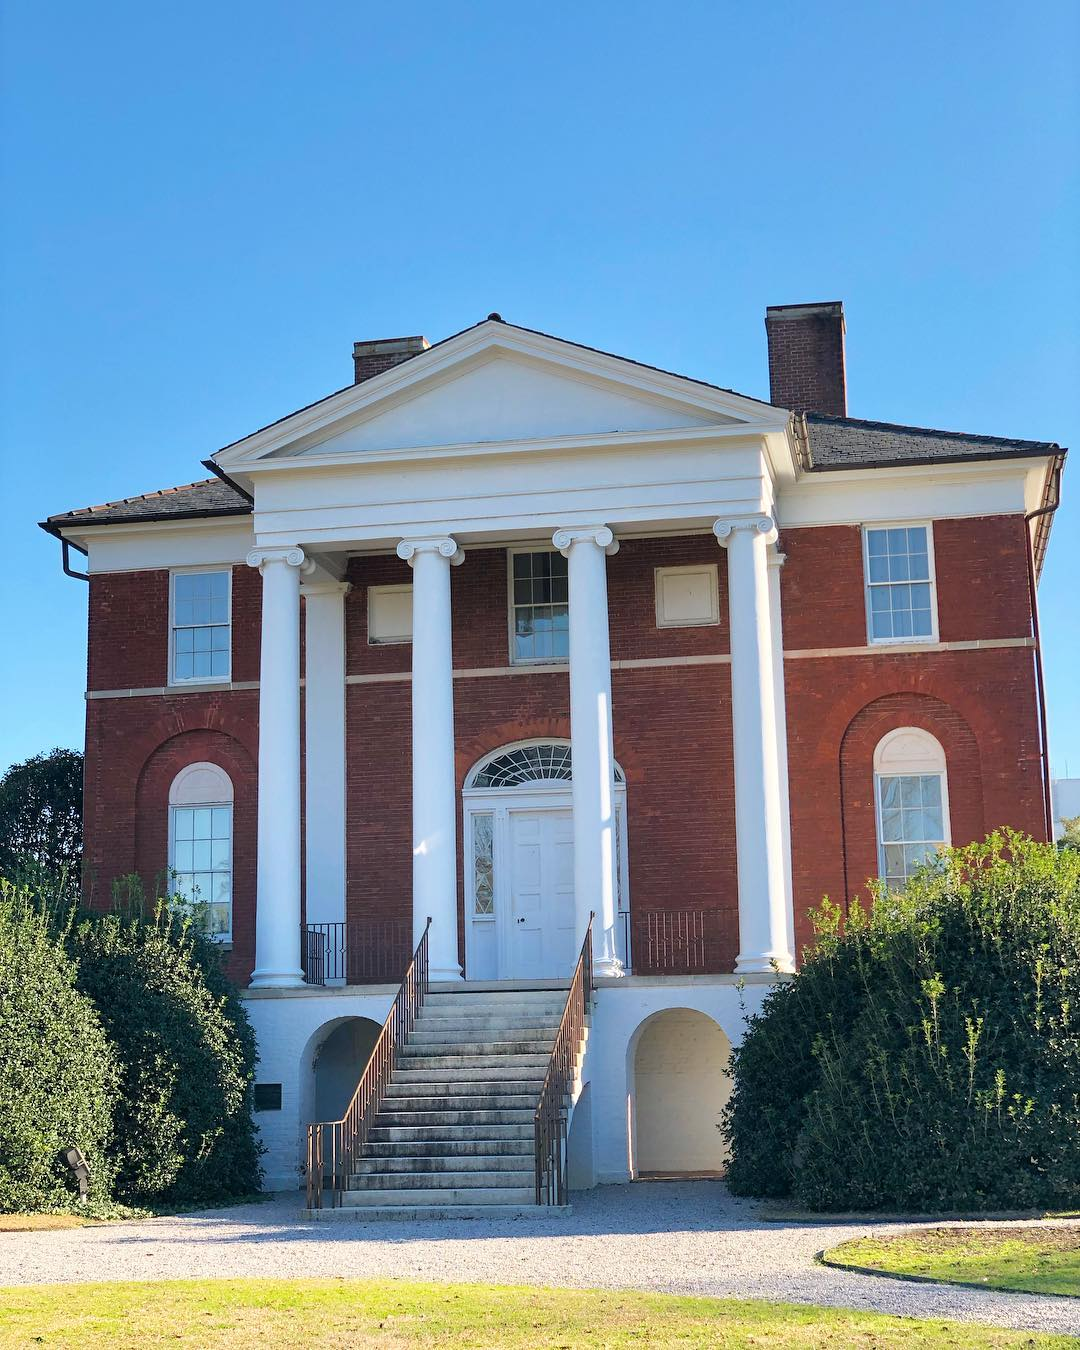 Built in 1823, it was originally known as the Ainsley Hall House. The property was used as a campus for three different religious schools and was the original home for Winthrop University in 1886